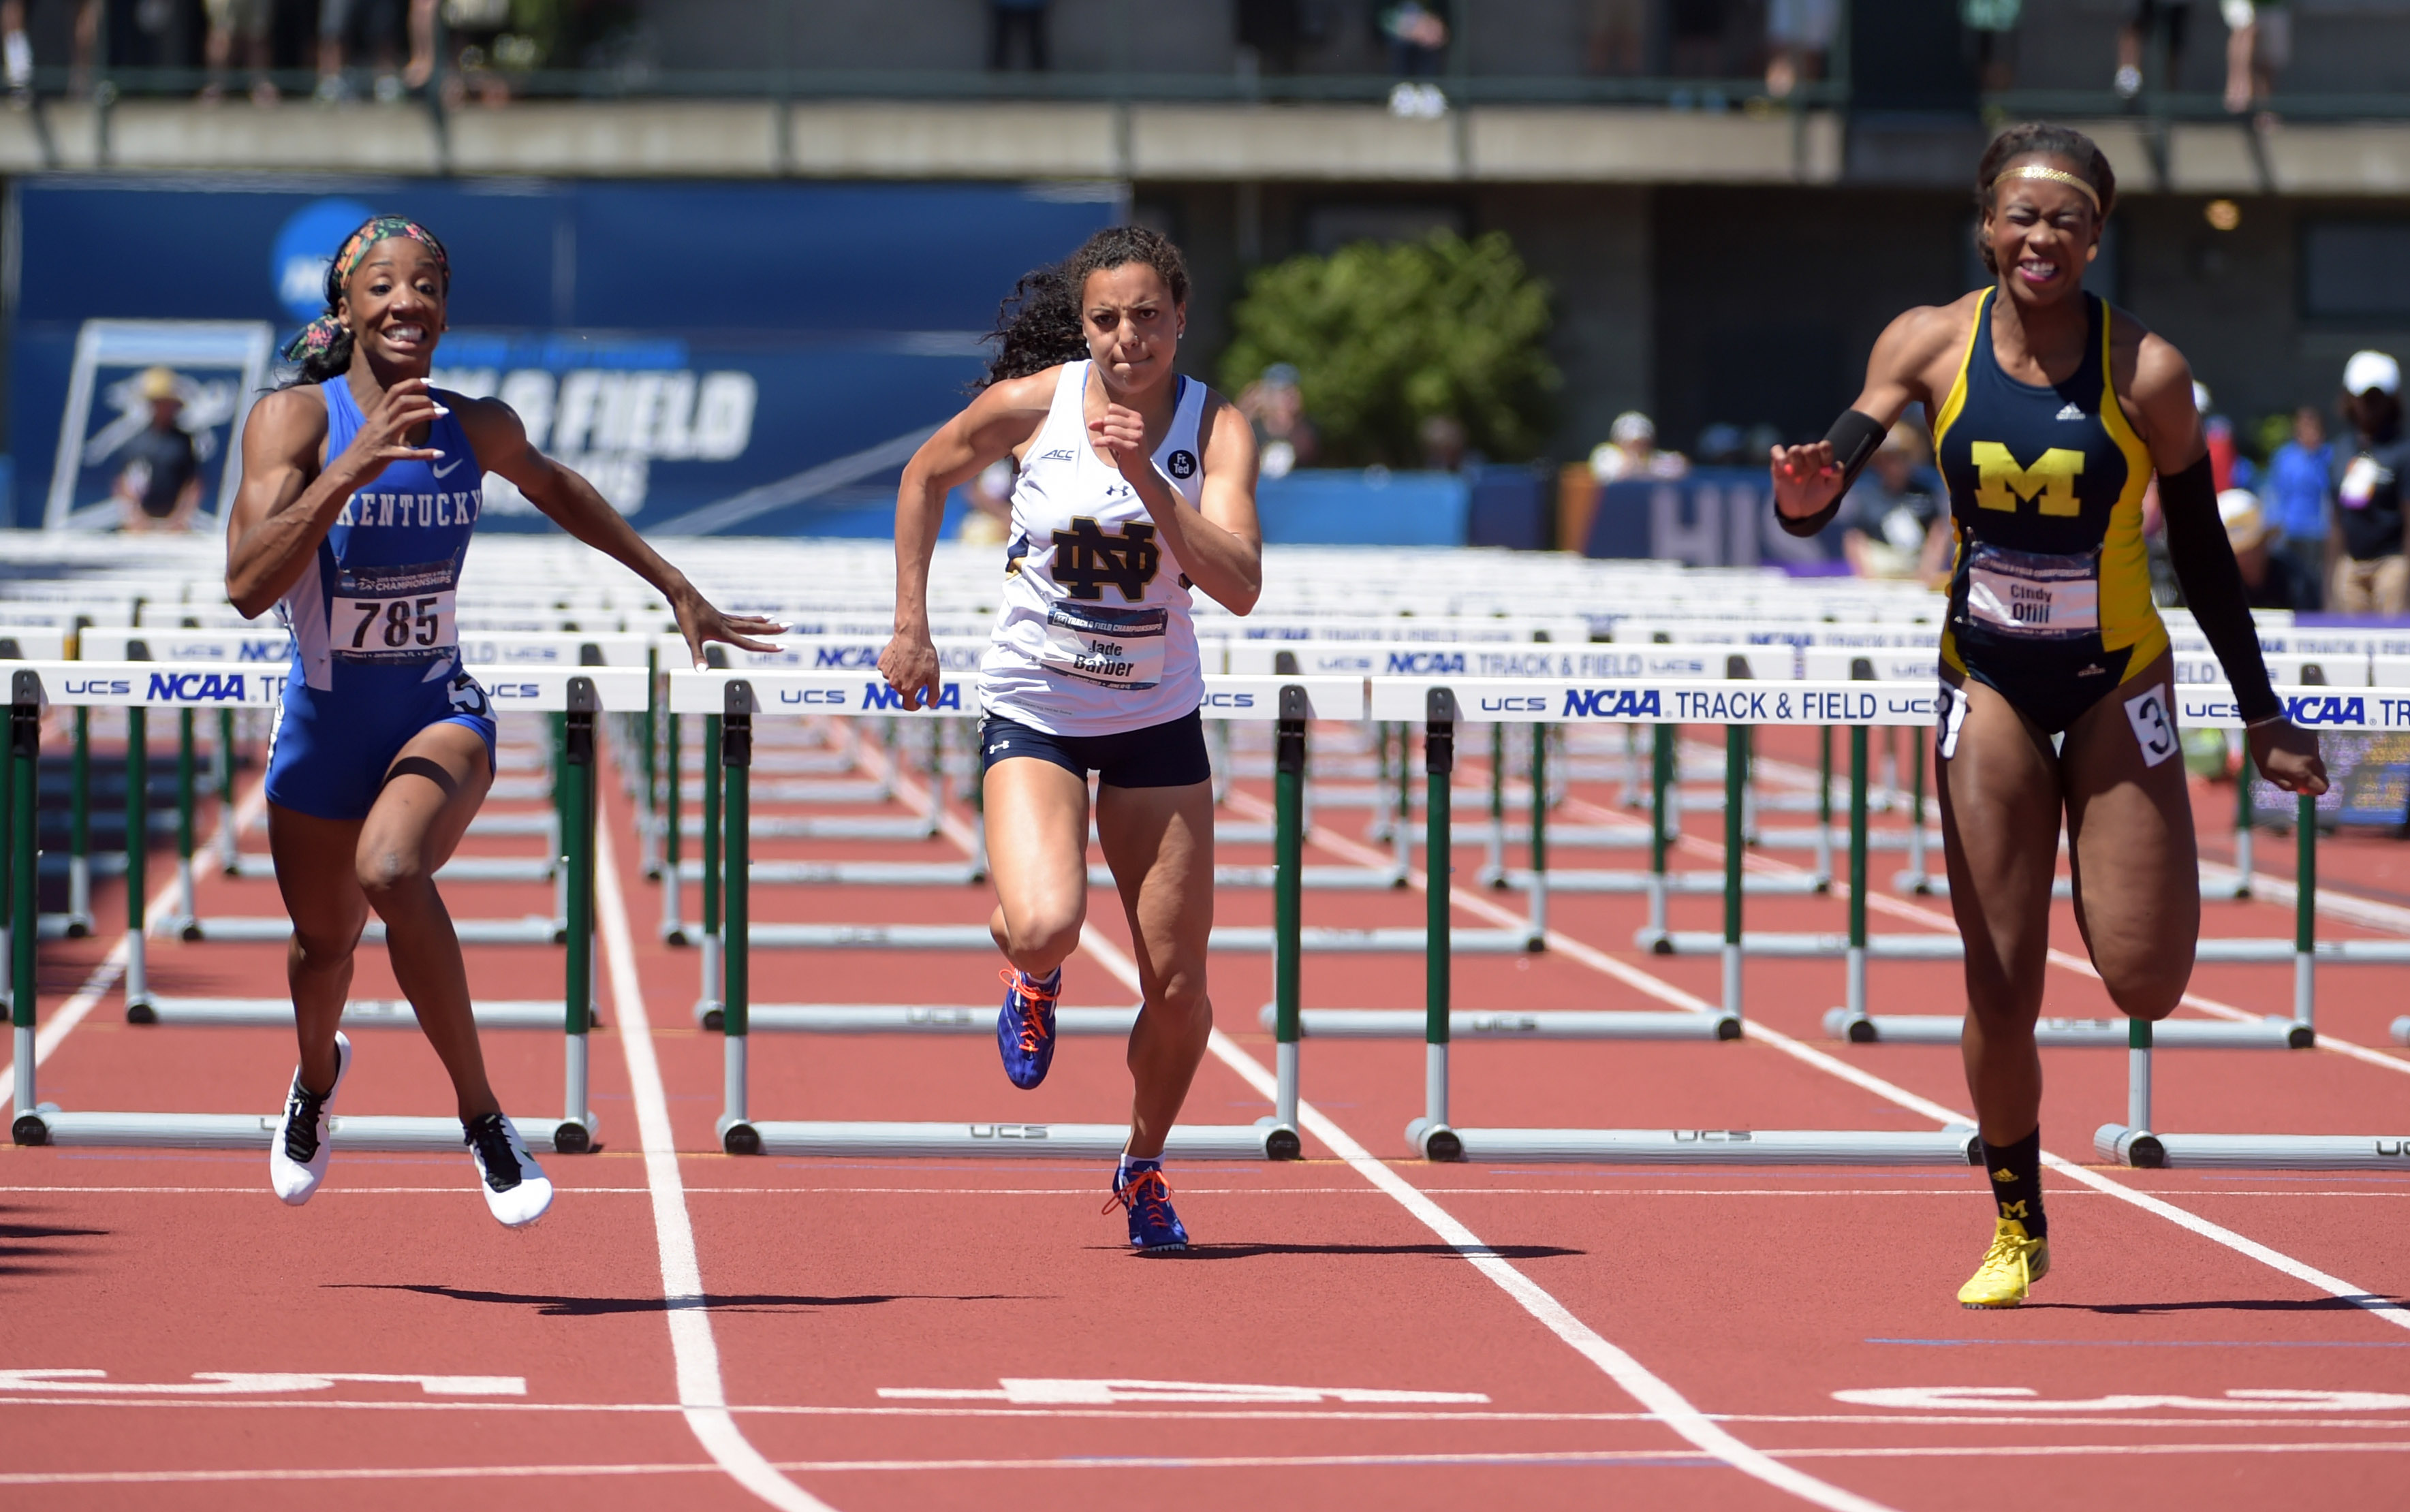 8672175-track-and-field-ncaa-championships